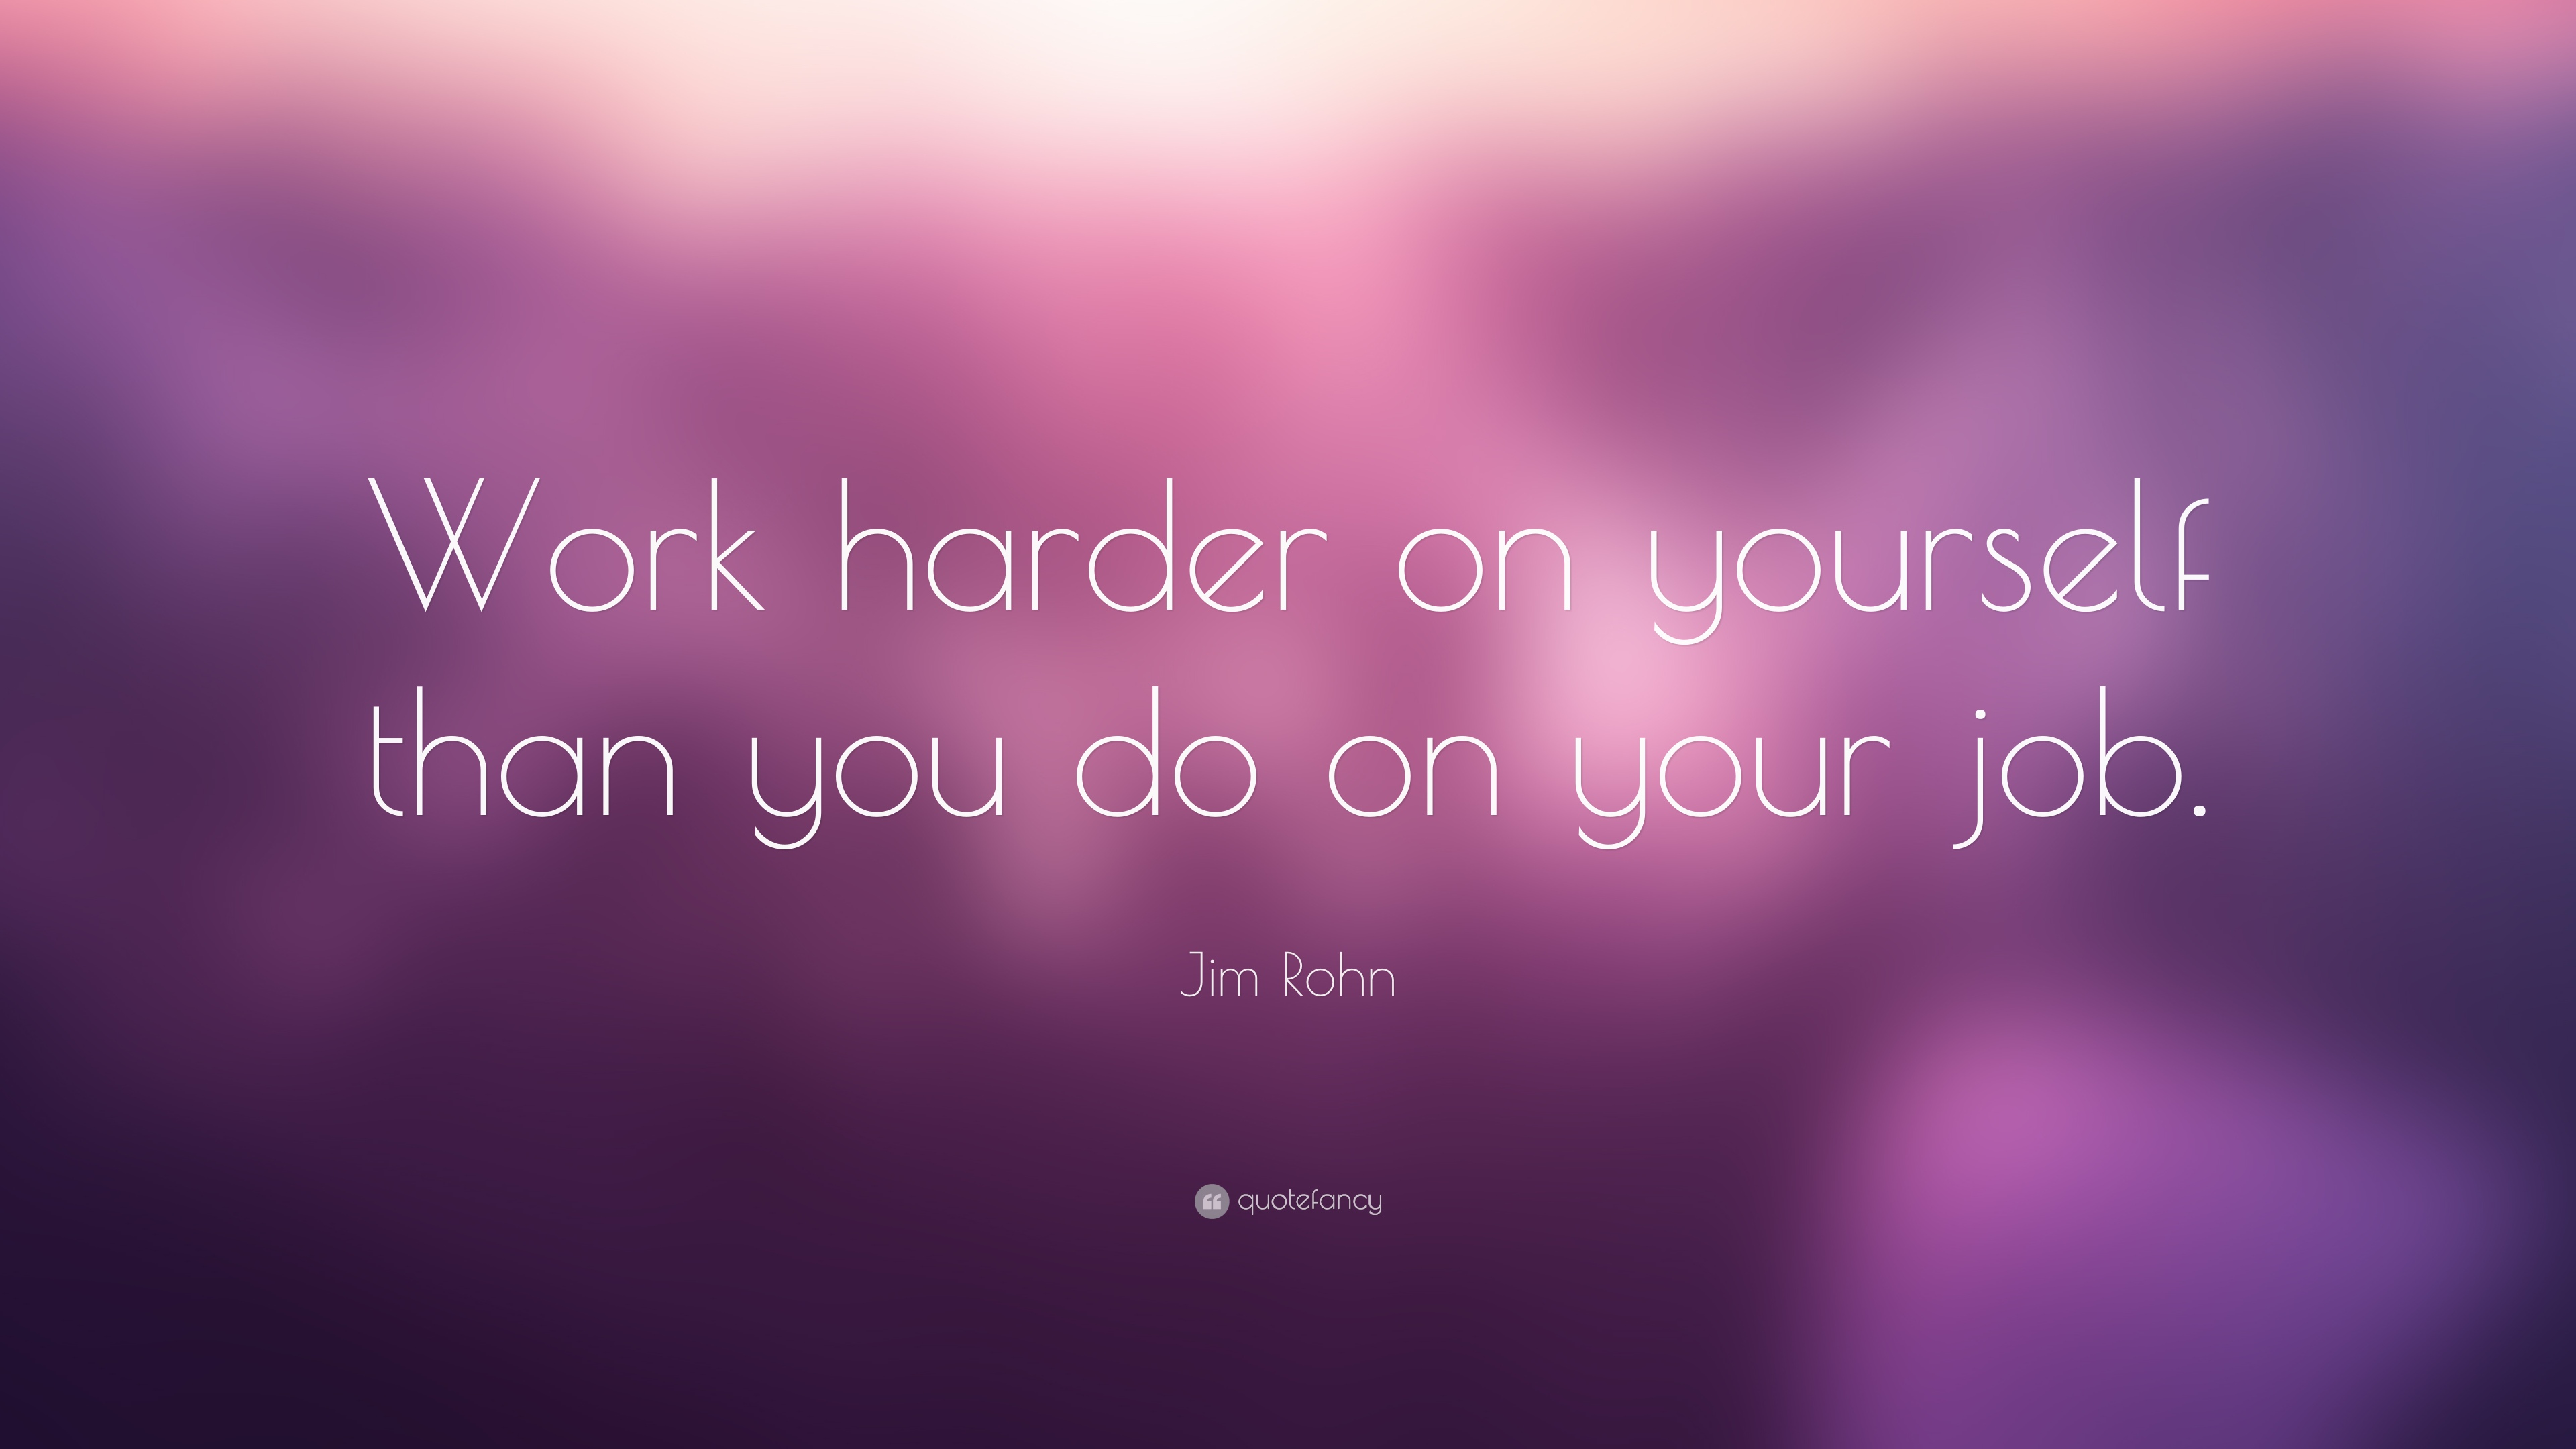 jim rohn quote work harder on yourself than you do on your job jim rohn quote work harder on yourself than you do on your job